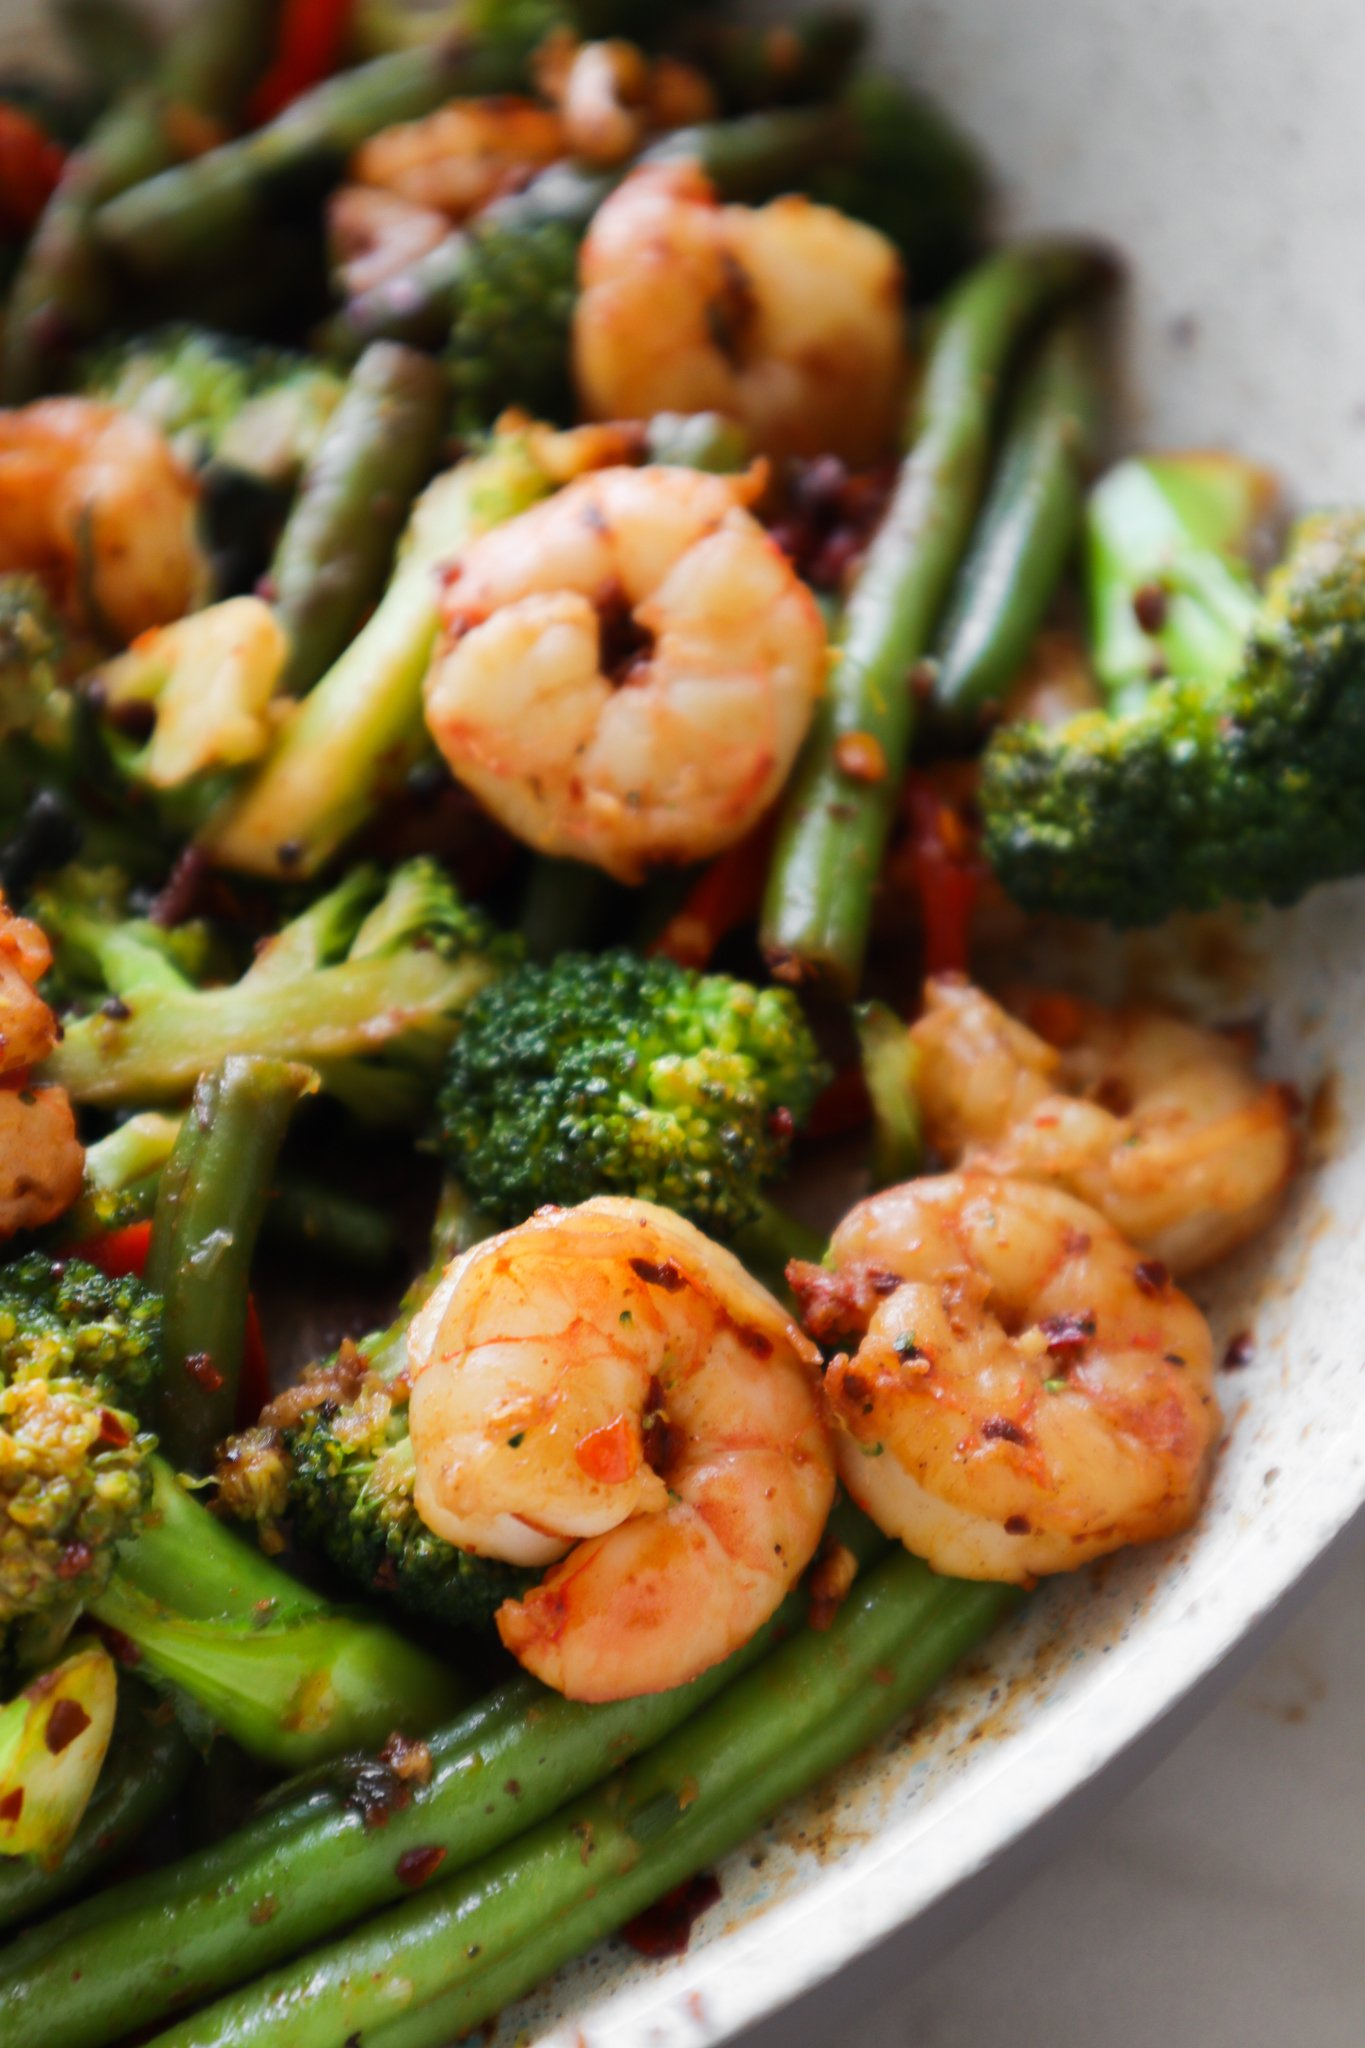 Prepare a healthy dinner in 15 minutes with this easy spicy shrimp and vegetable stir fry recipe! This simple dinner idea is gluten free, dairy free and low in carbs.